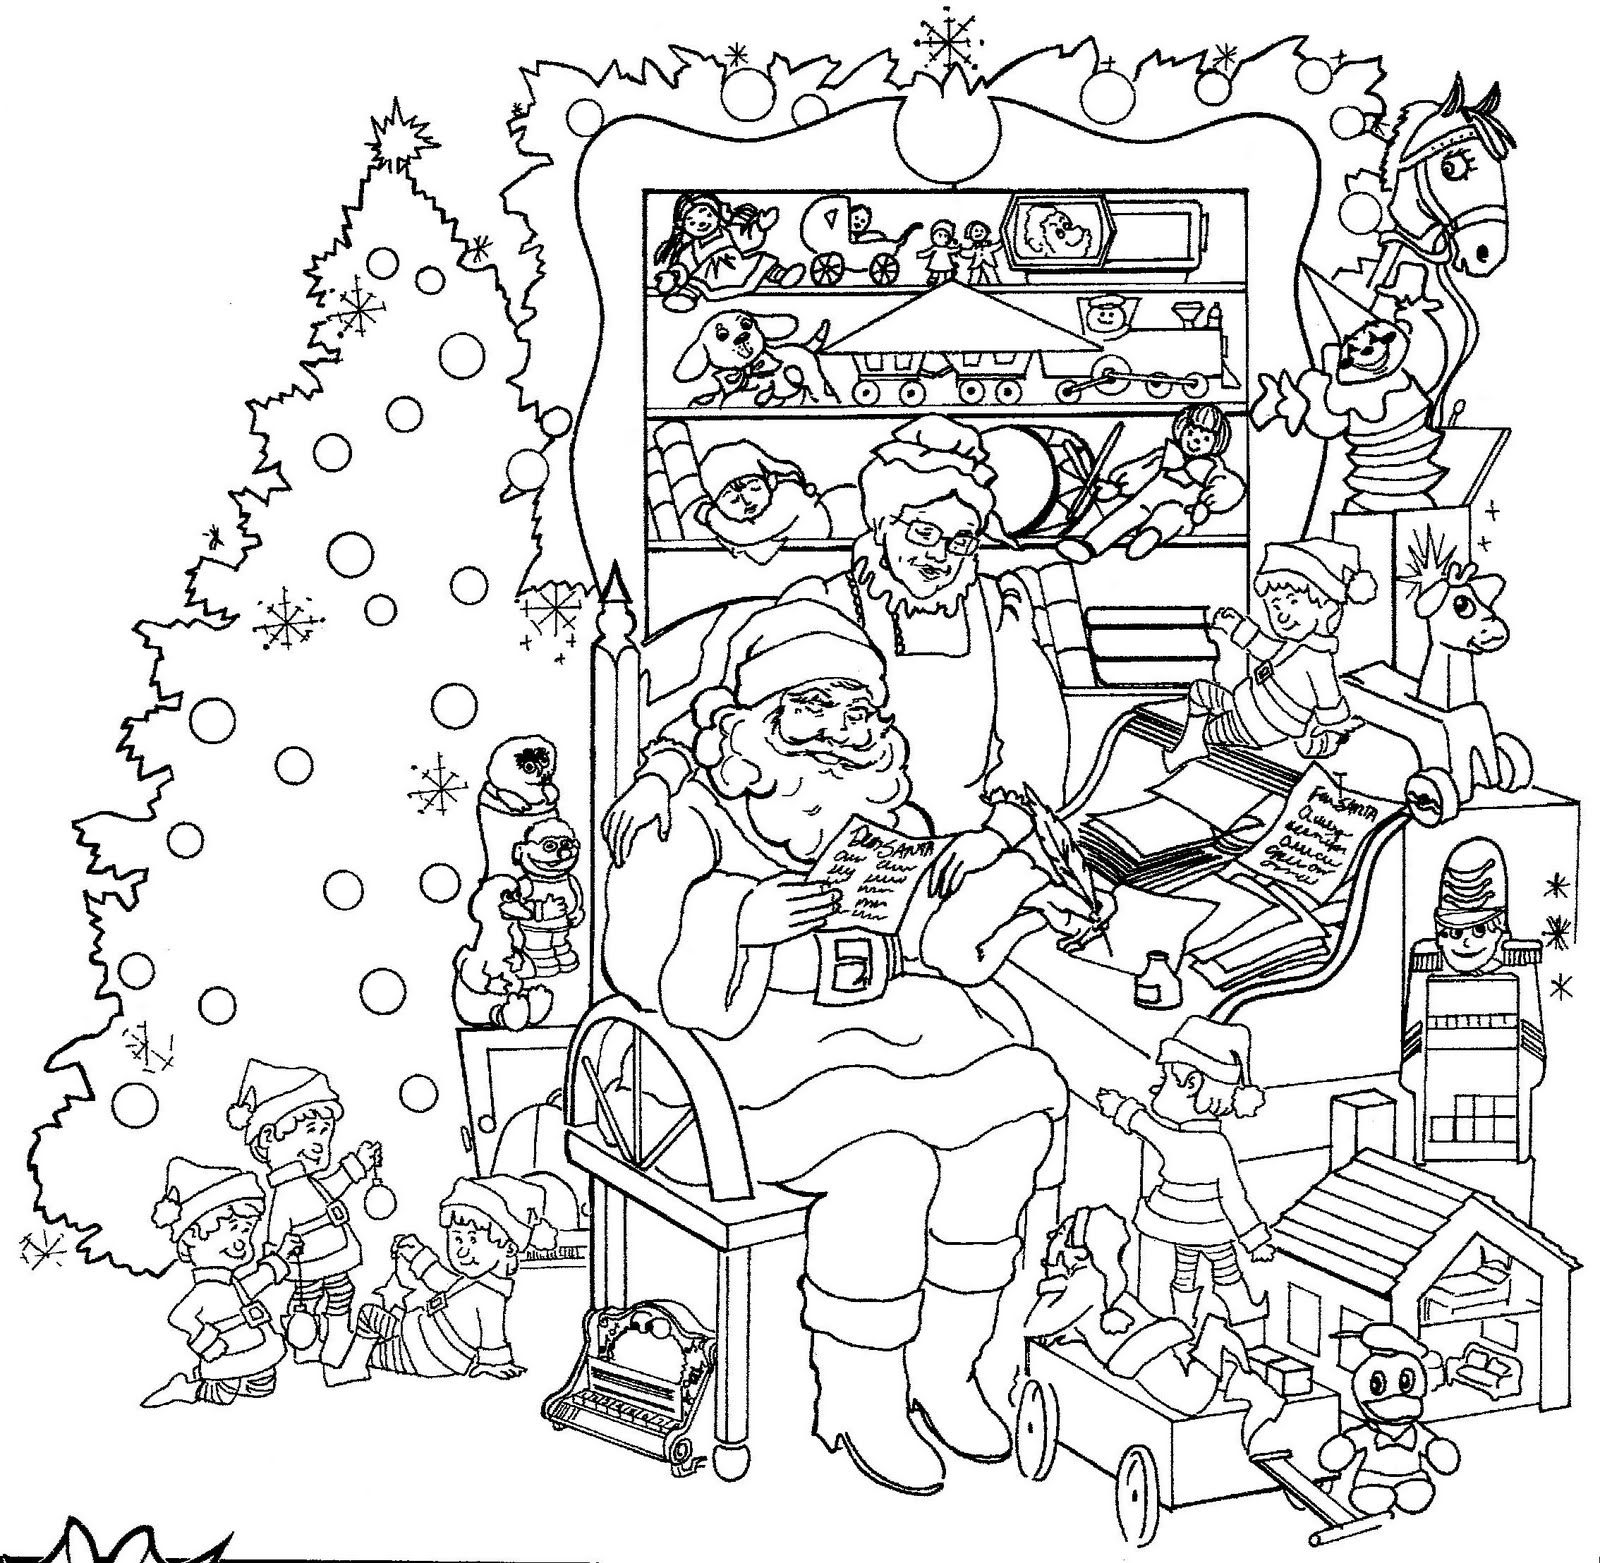 Christmas Coloring Contest 1981 Printable Christmas Coloring Pages Christmas Coloring Sheets Santa Coloring Pages